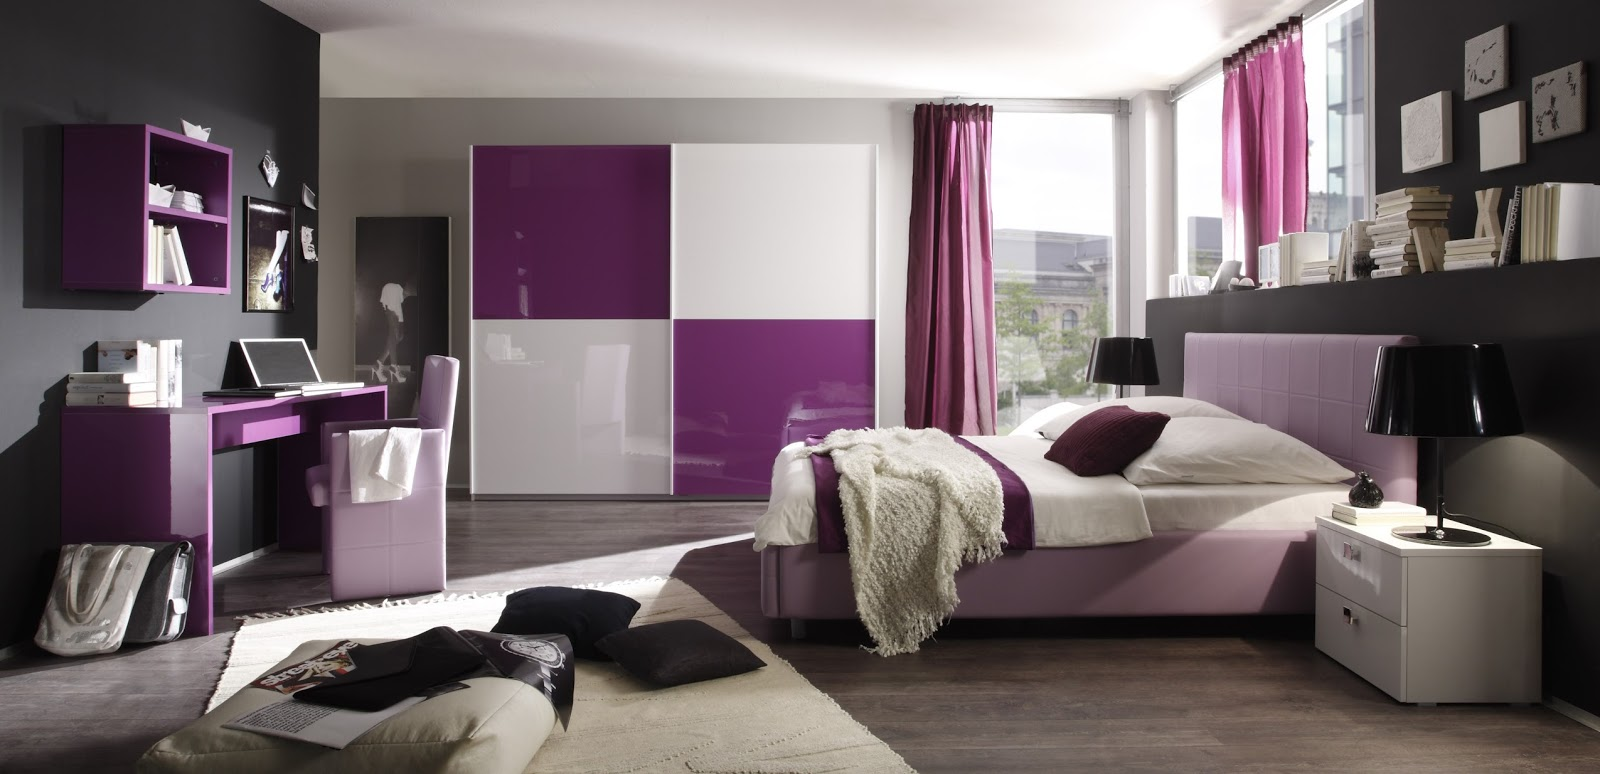 dormitorios para chicas en color morado dormitorios. Black Bedroom Furniture Sets. Home Design Ideas